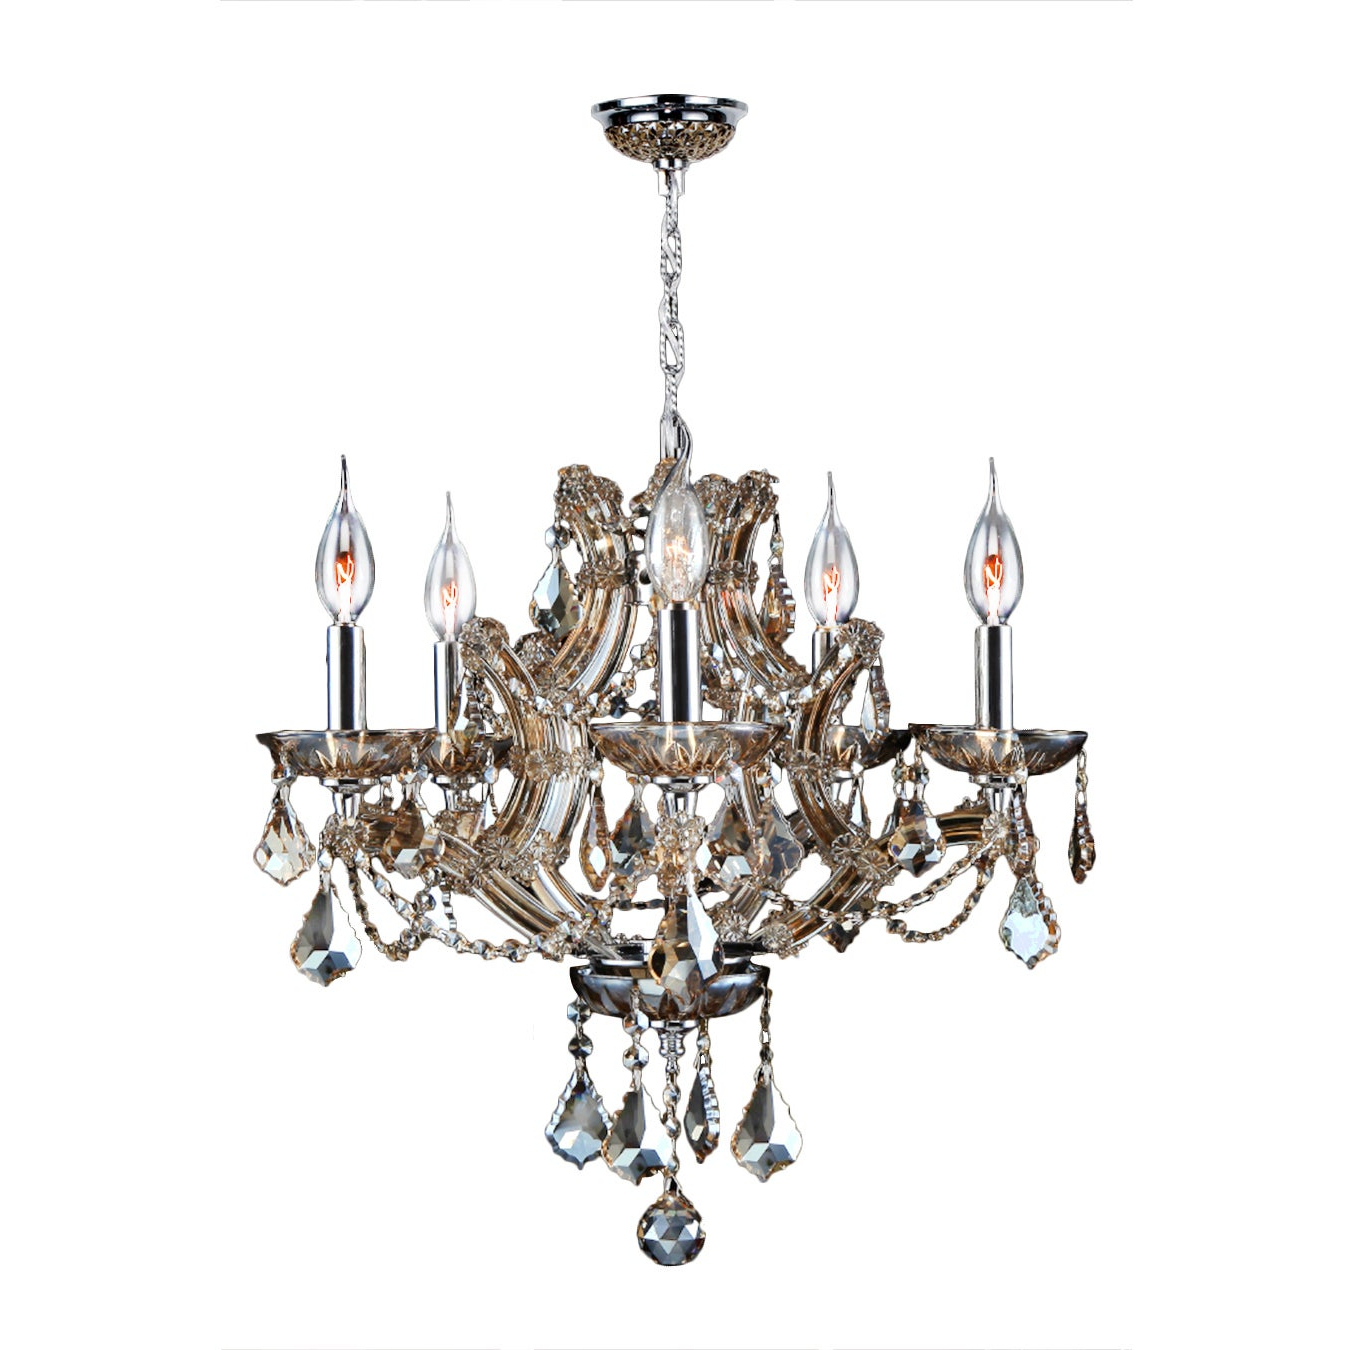 Thresa 5 Light Shaded Chandeliers Pertaining To Most Recently Released Maria Theresa 5 Light Golden Teak Crystal Glam Chandelier Medium 19 In. W X  18 In (View 13 of 20)